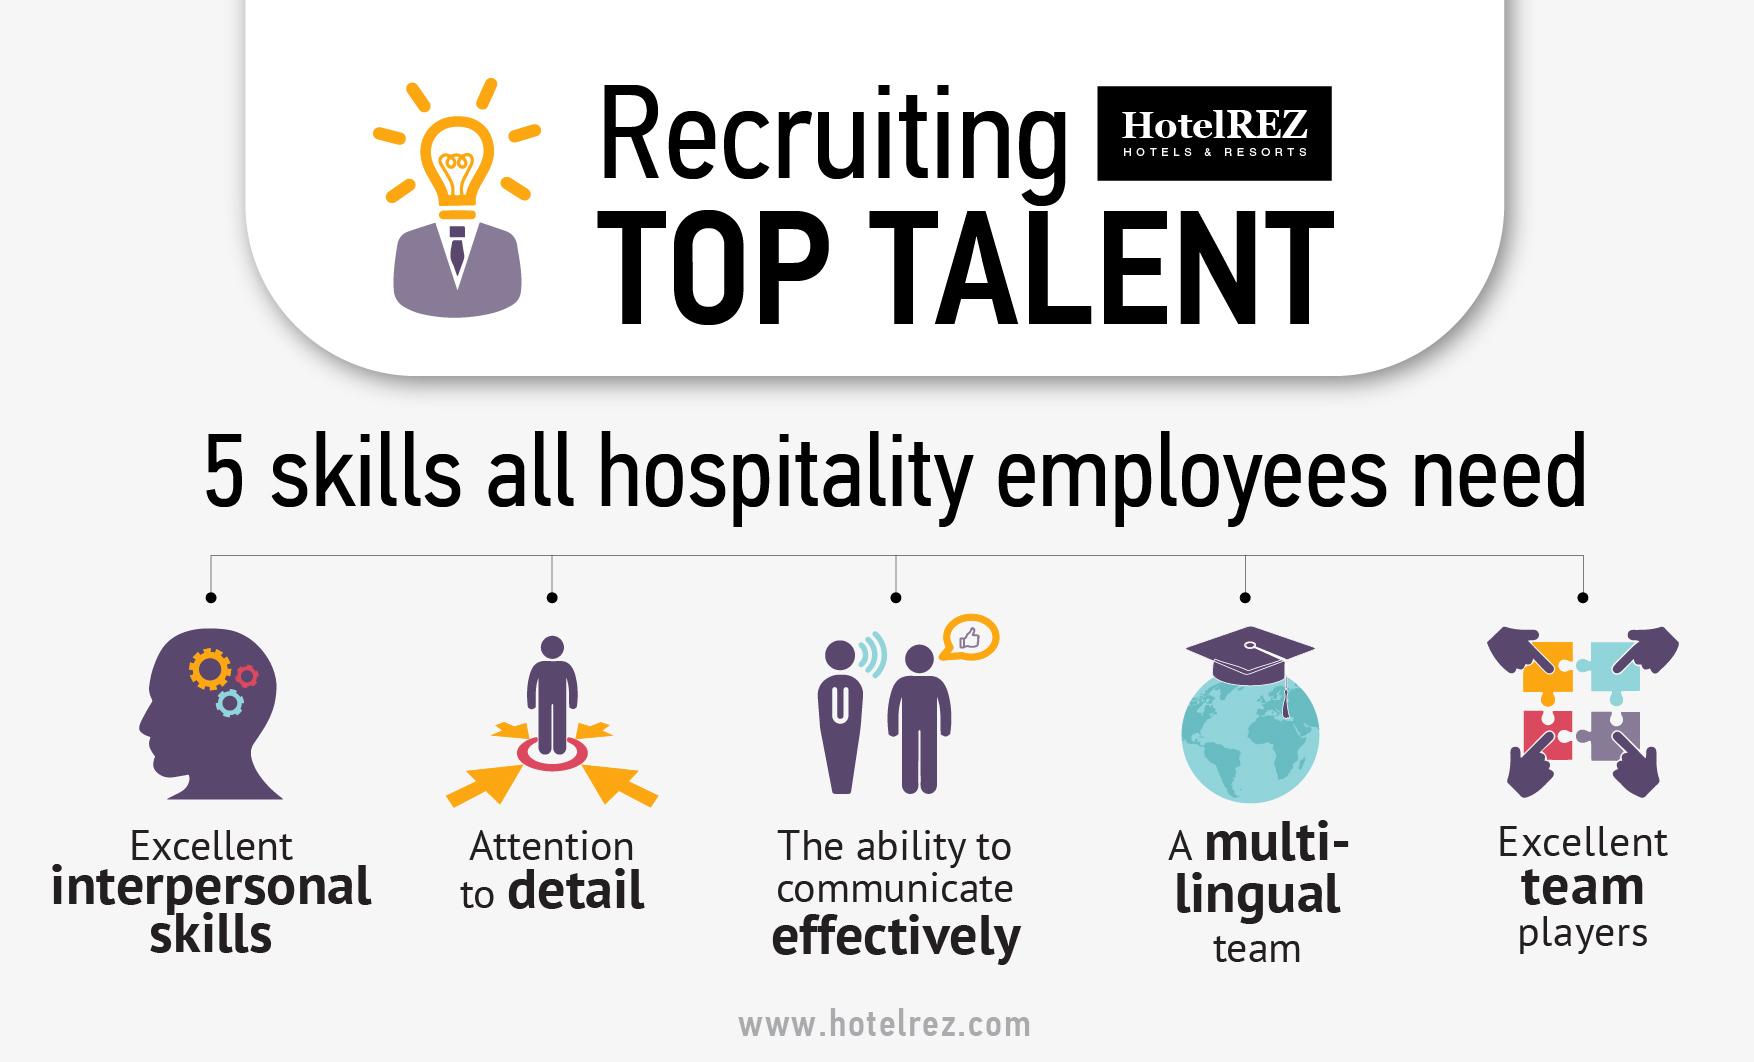 Hospitality employers: here are the top skills to look for in employees